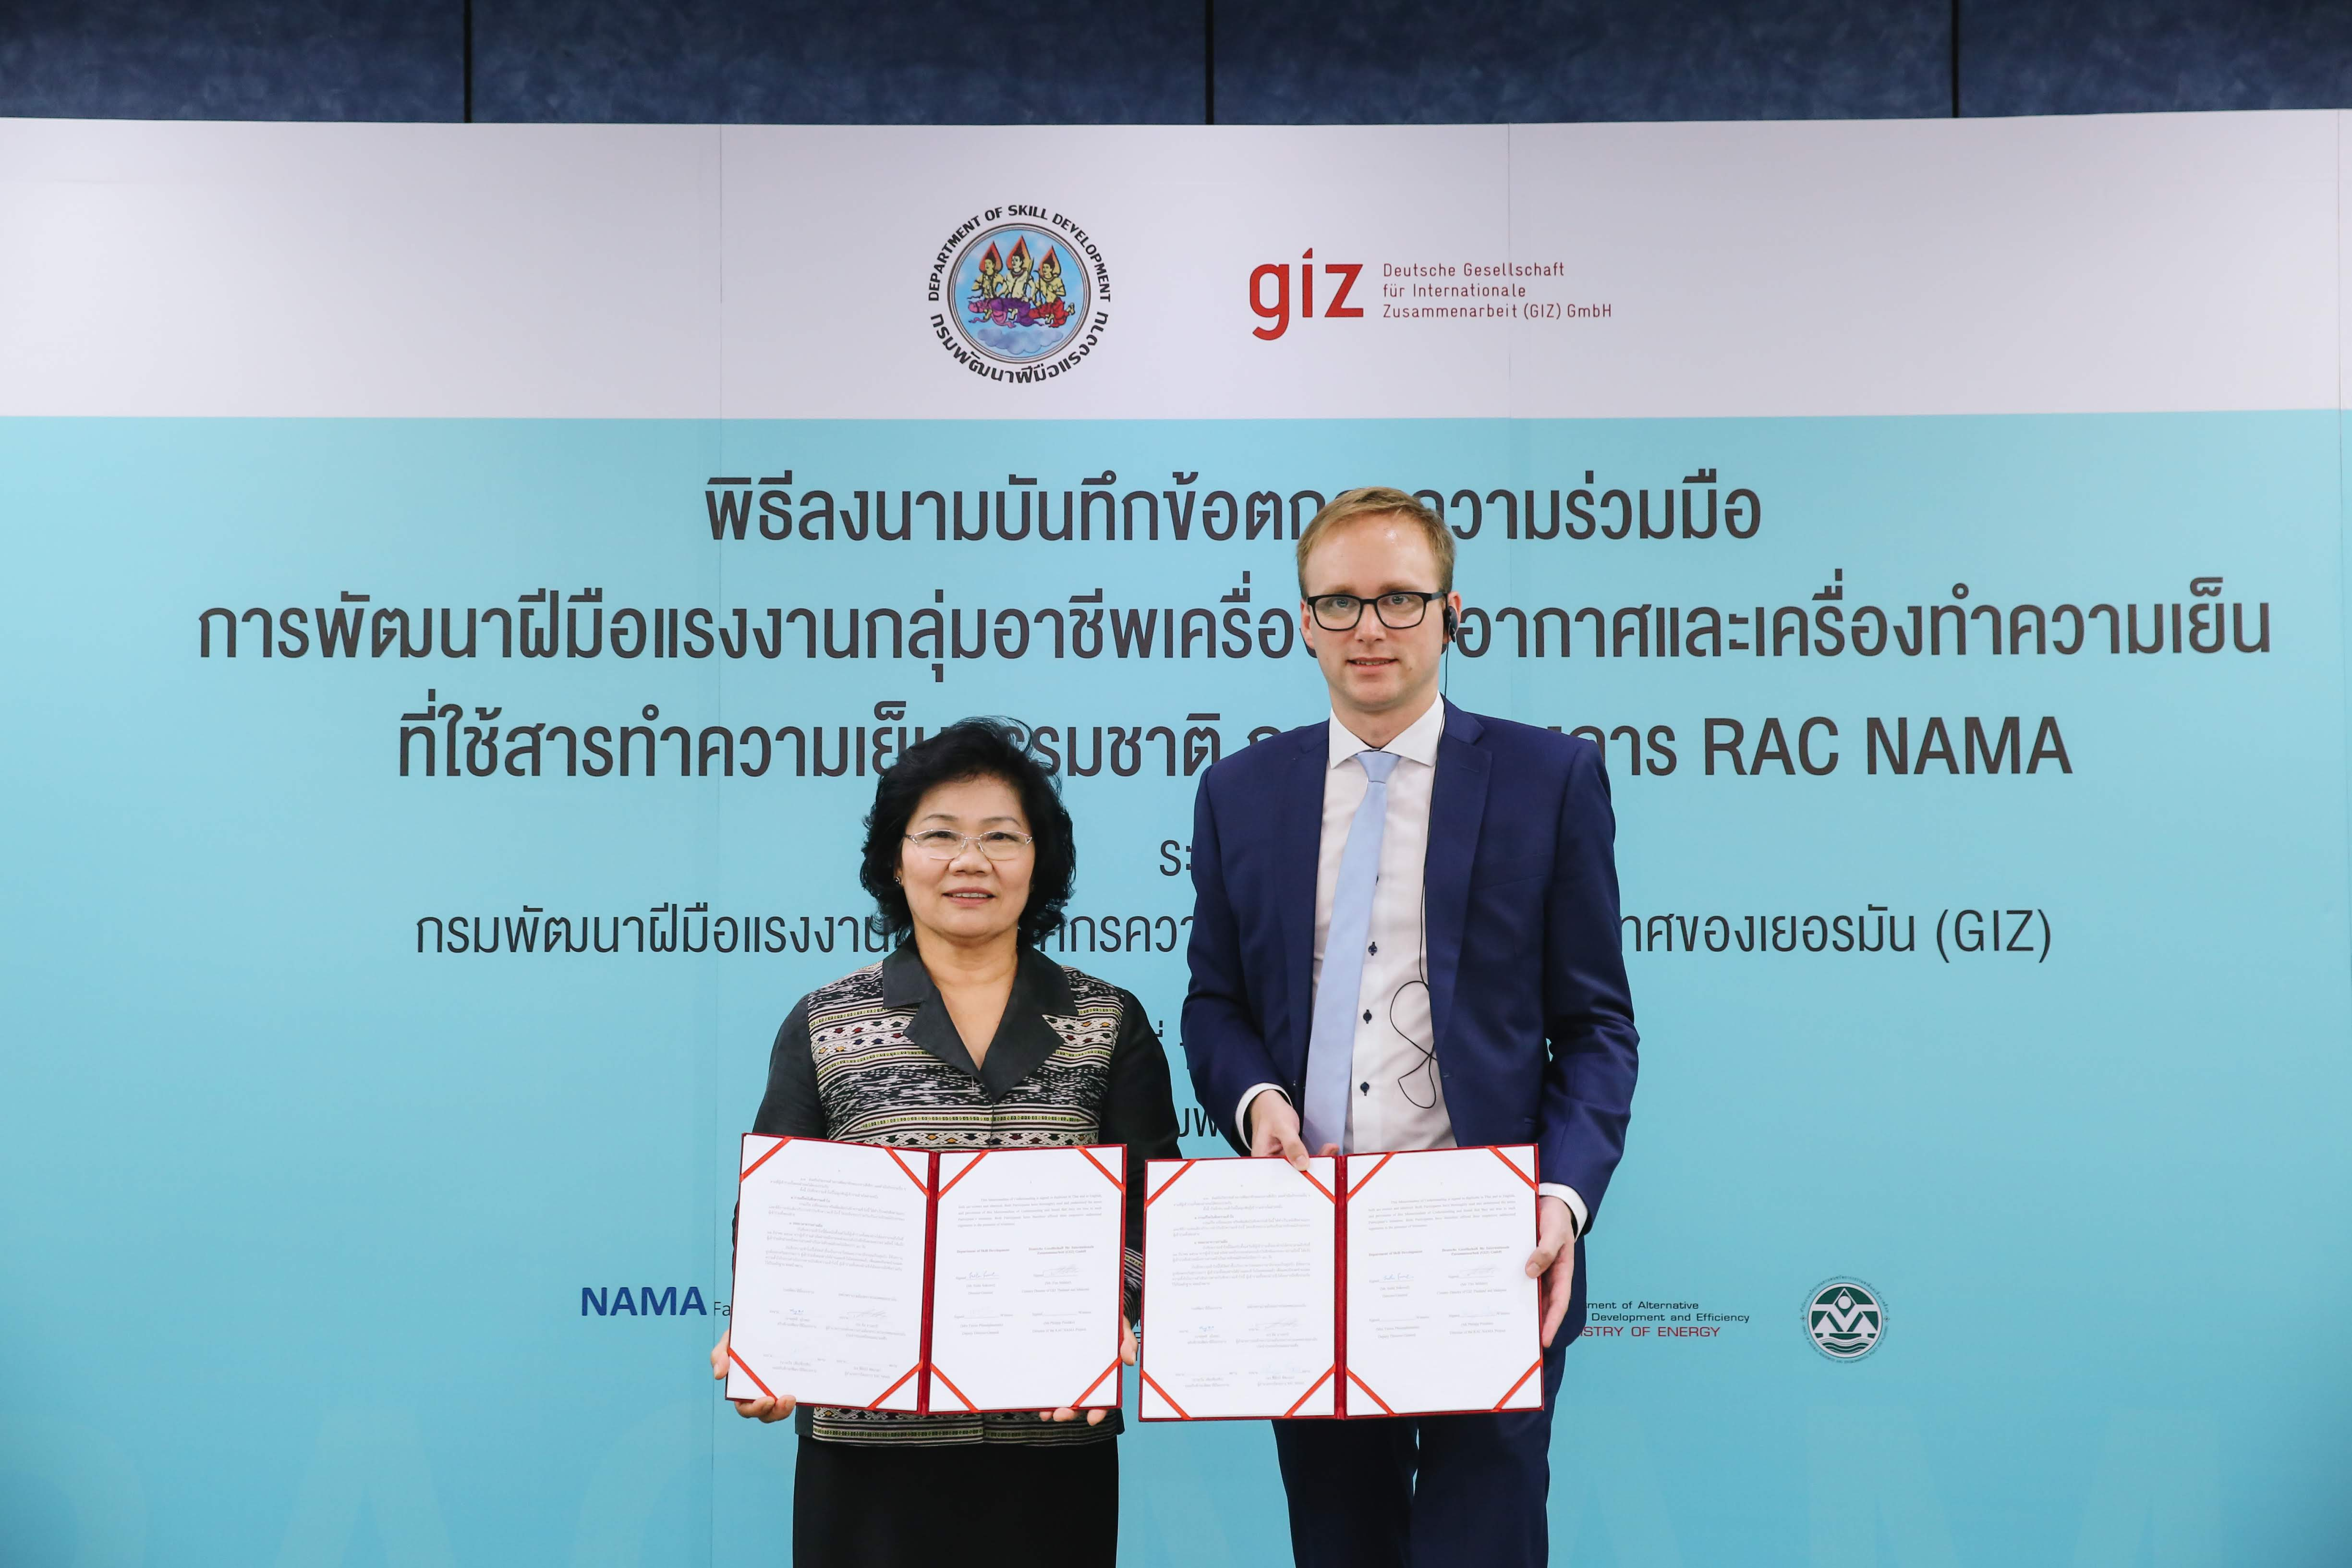 Ministry of Labour and GIZ Cooperate on Developing Skill